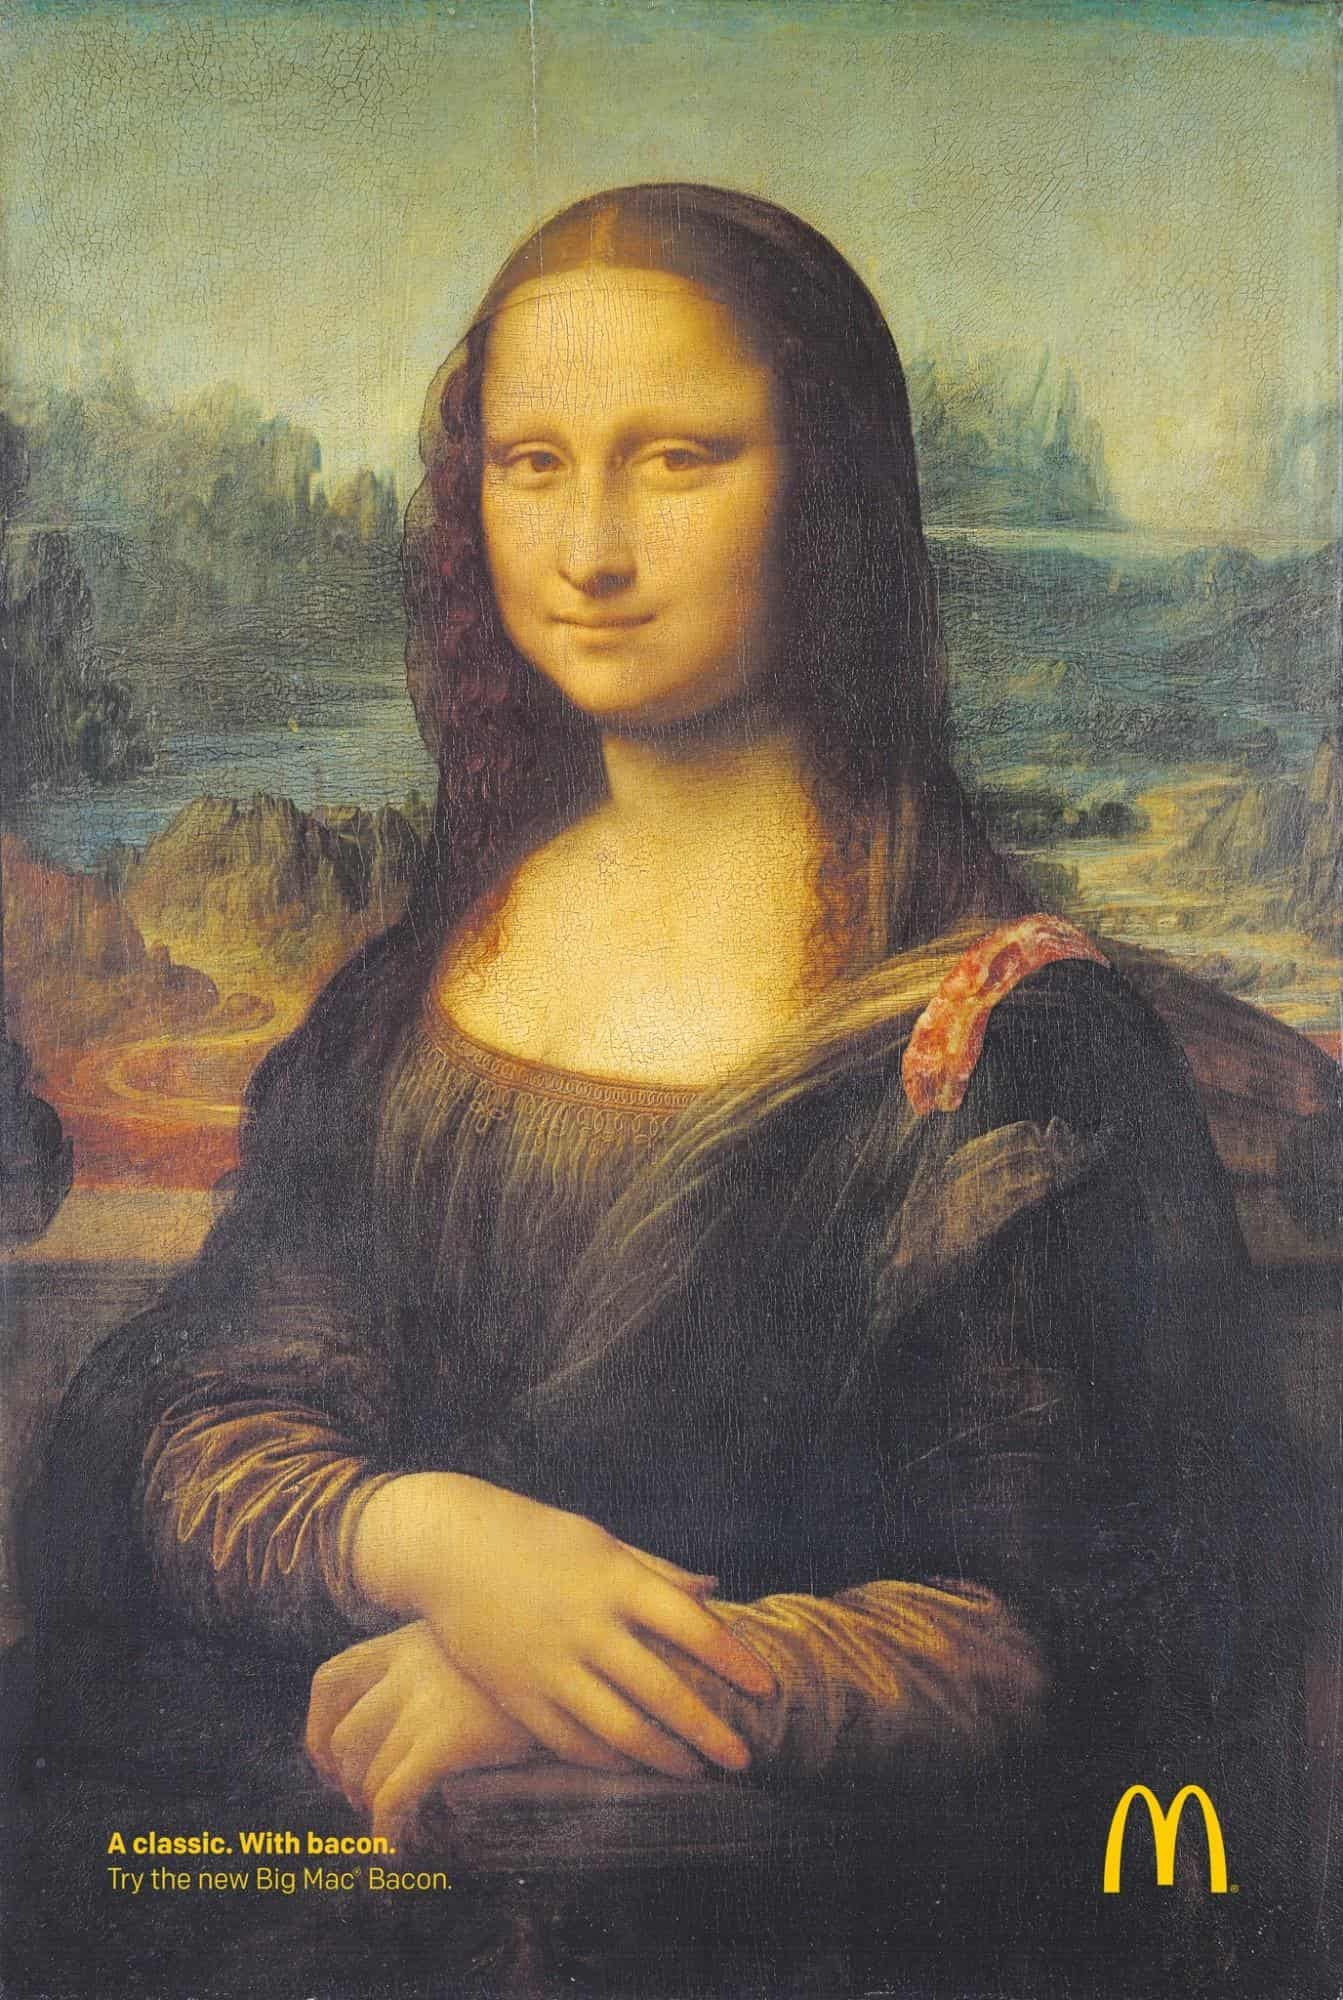 monalisa Mcdonald's advertisement example